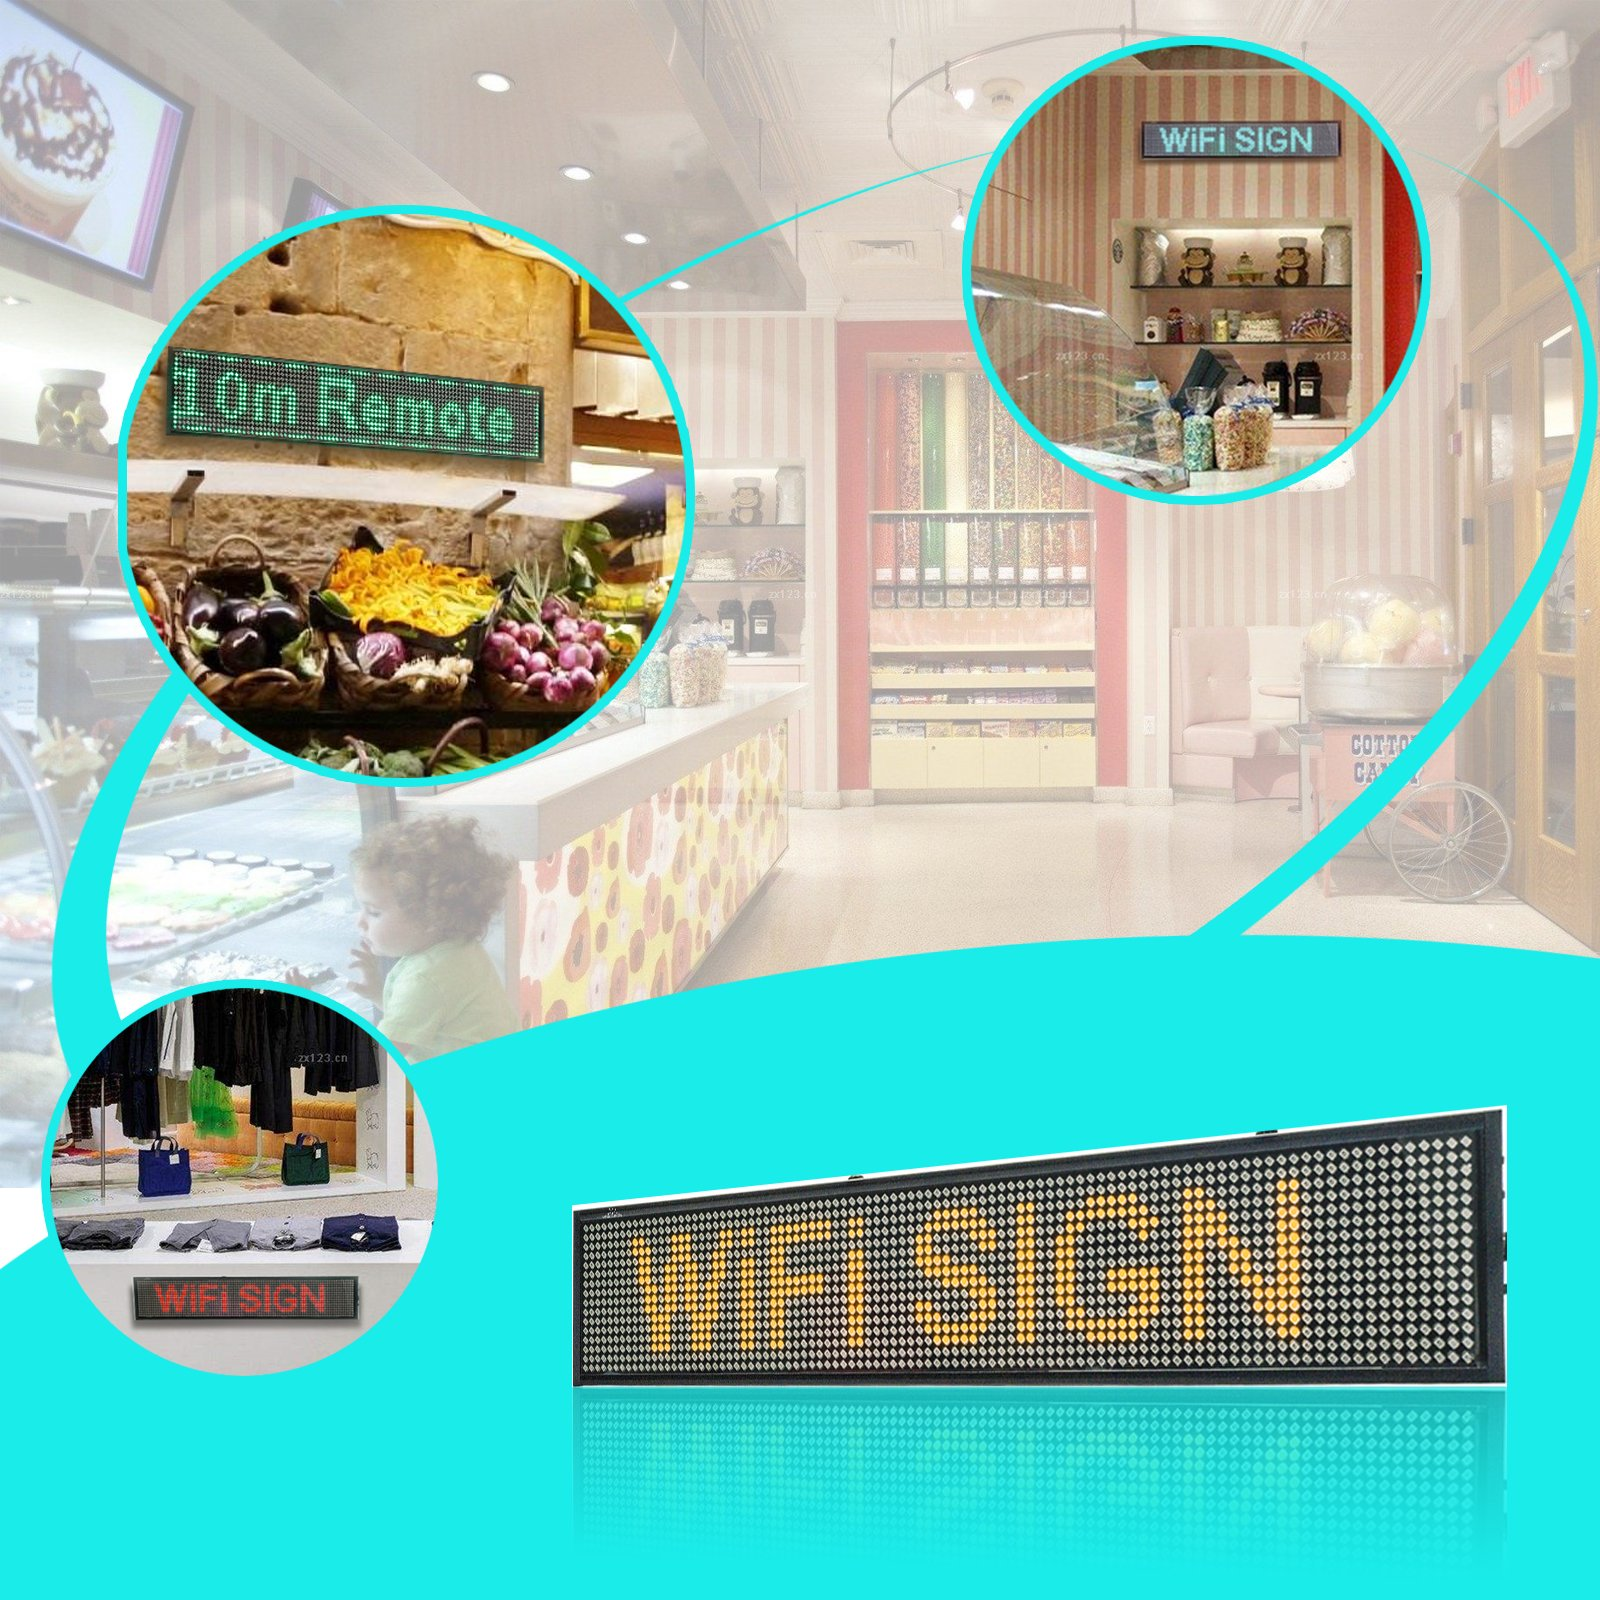 Leadleds P5 Wifi Scrolling LED Sign Display Board for Business, Working with Smartphone and Tablet( Blue )